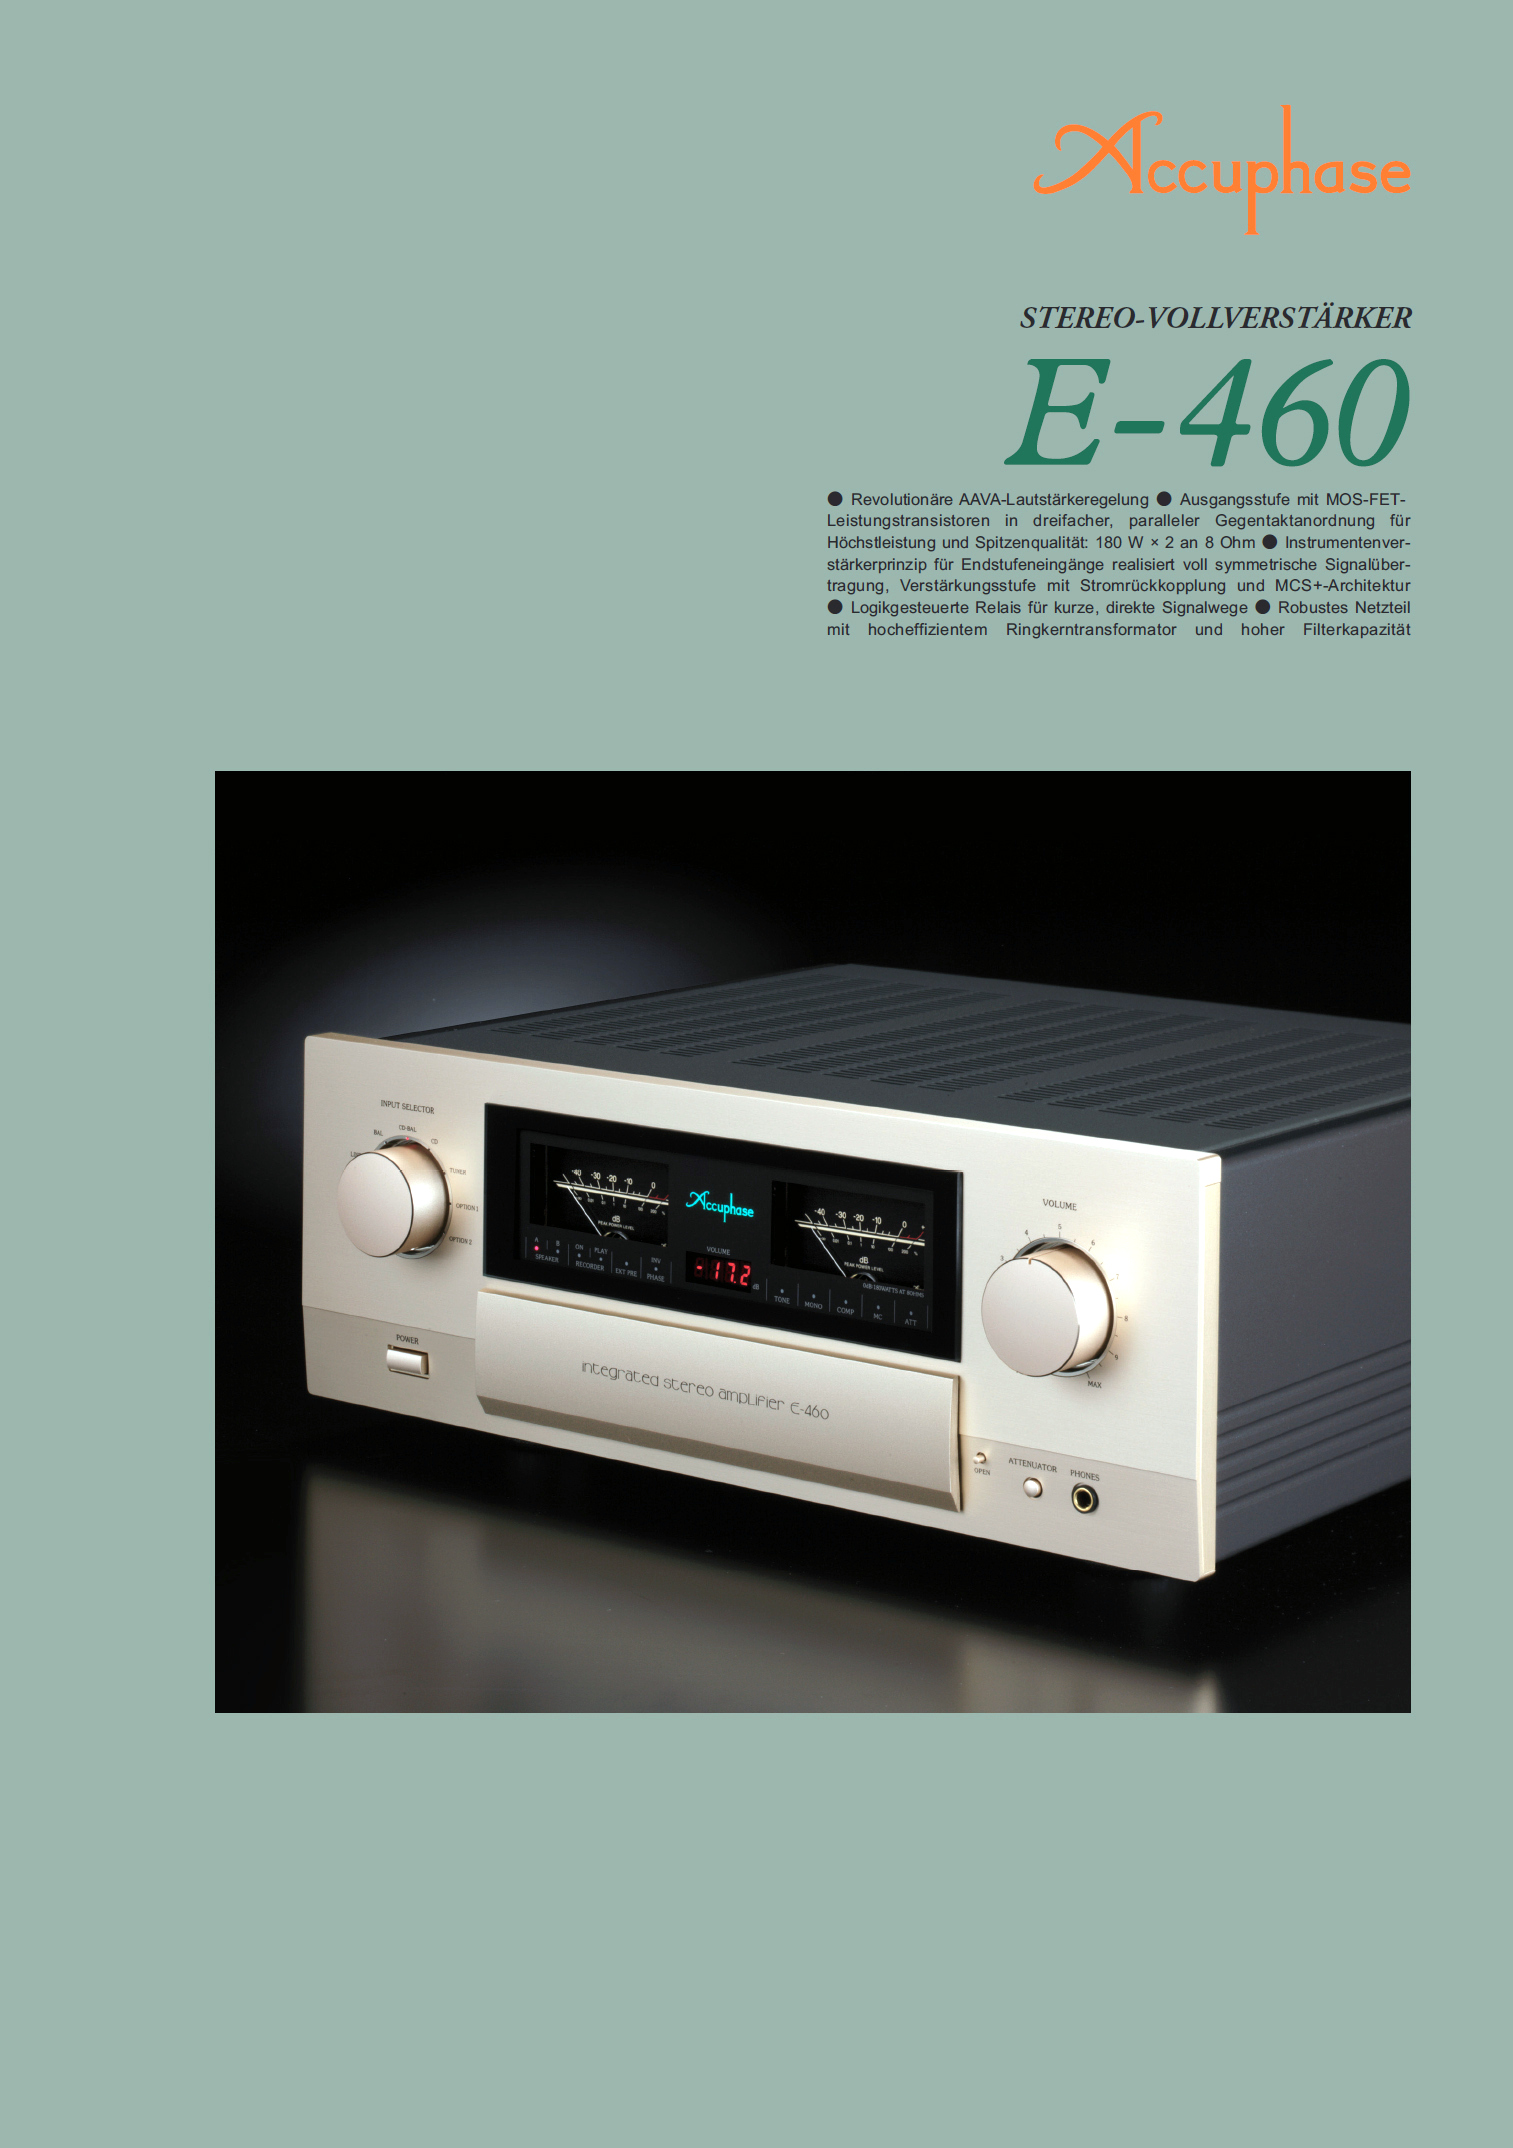 Accuphase E-460-Prospekt-1.jpg